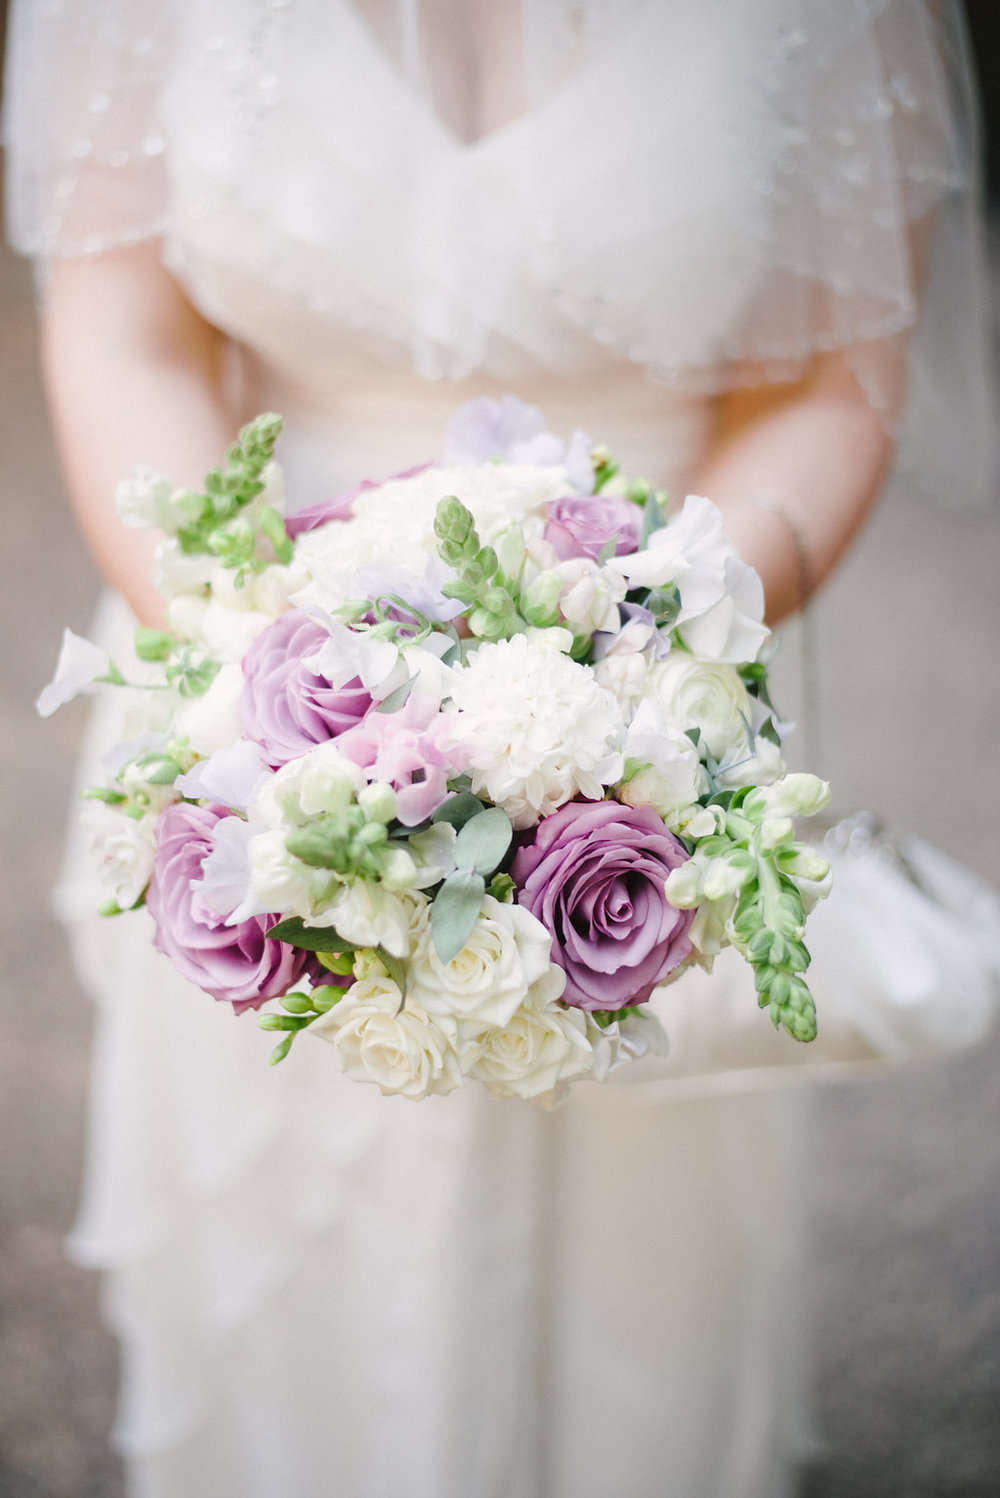 brides bouquet in white and lilac spring flowers to include roses, snapdragons and fragrant freesia